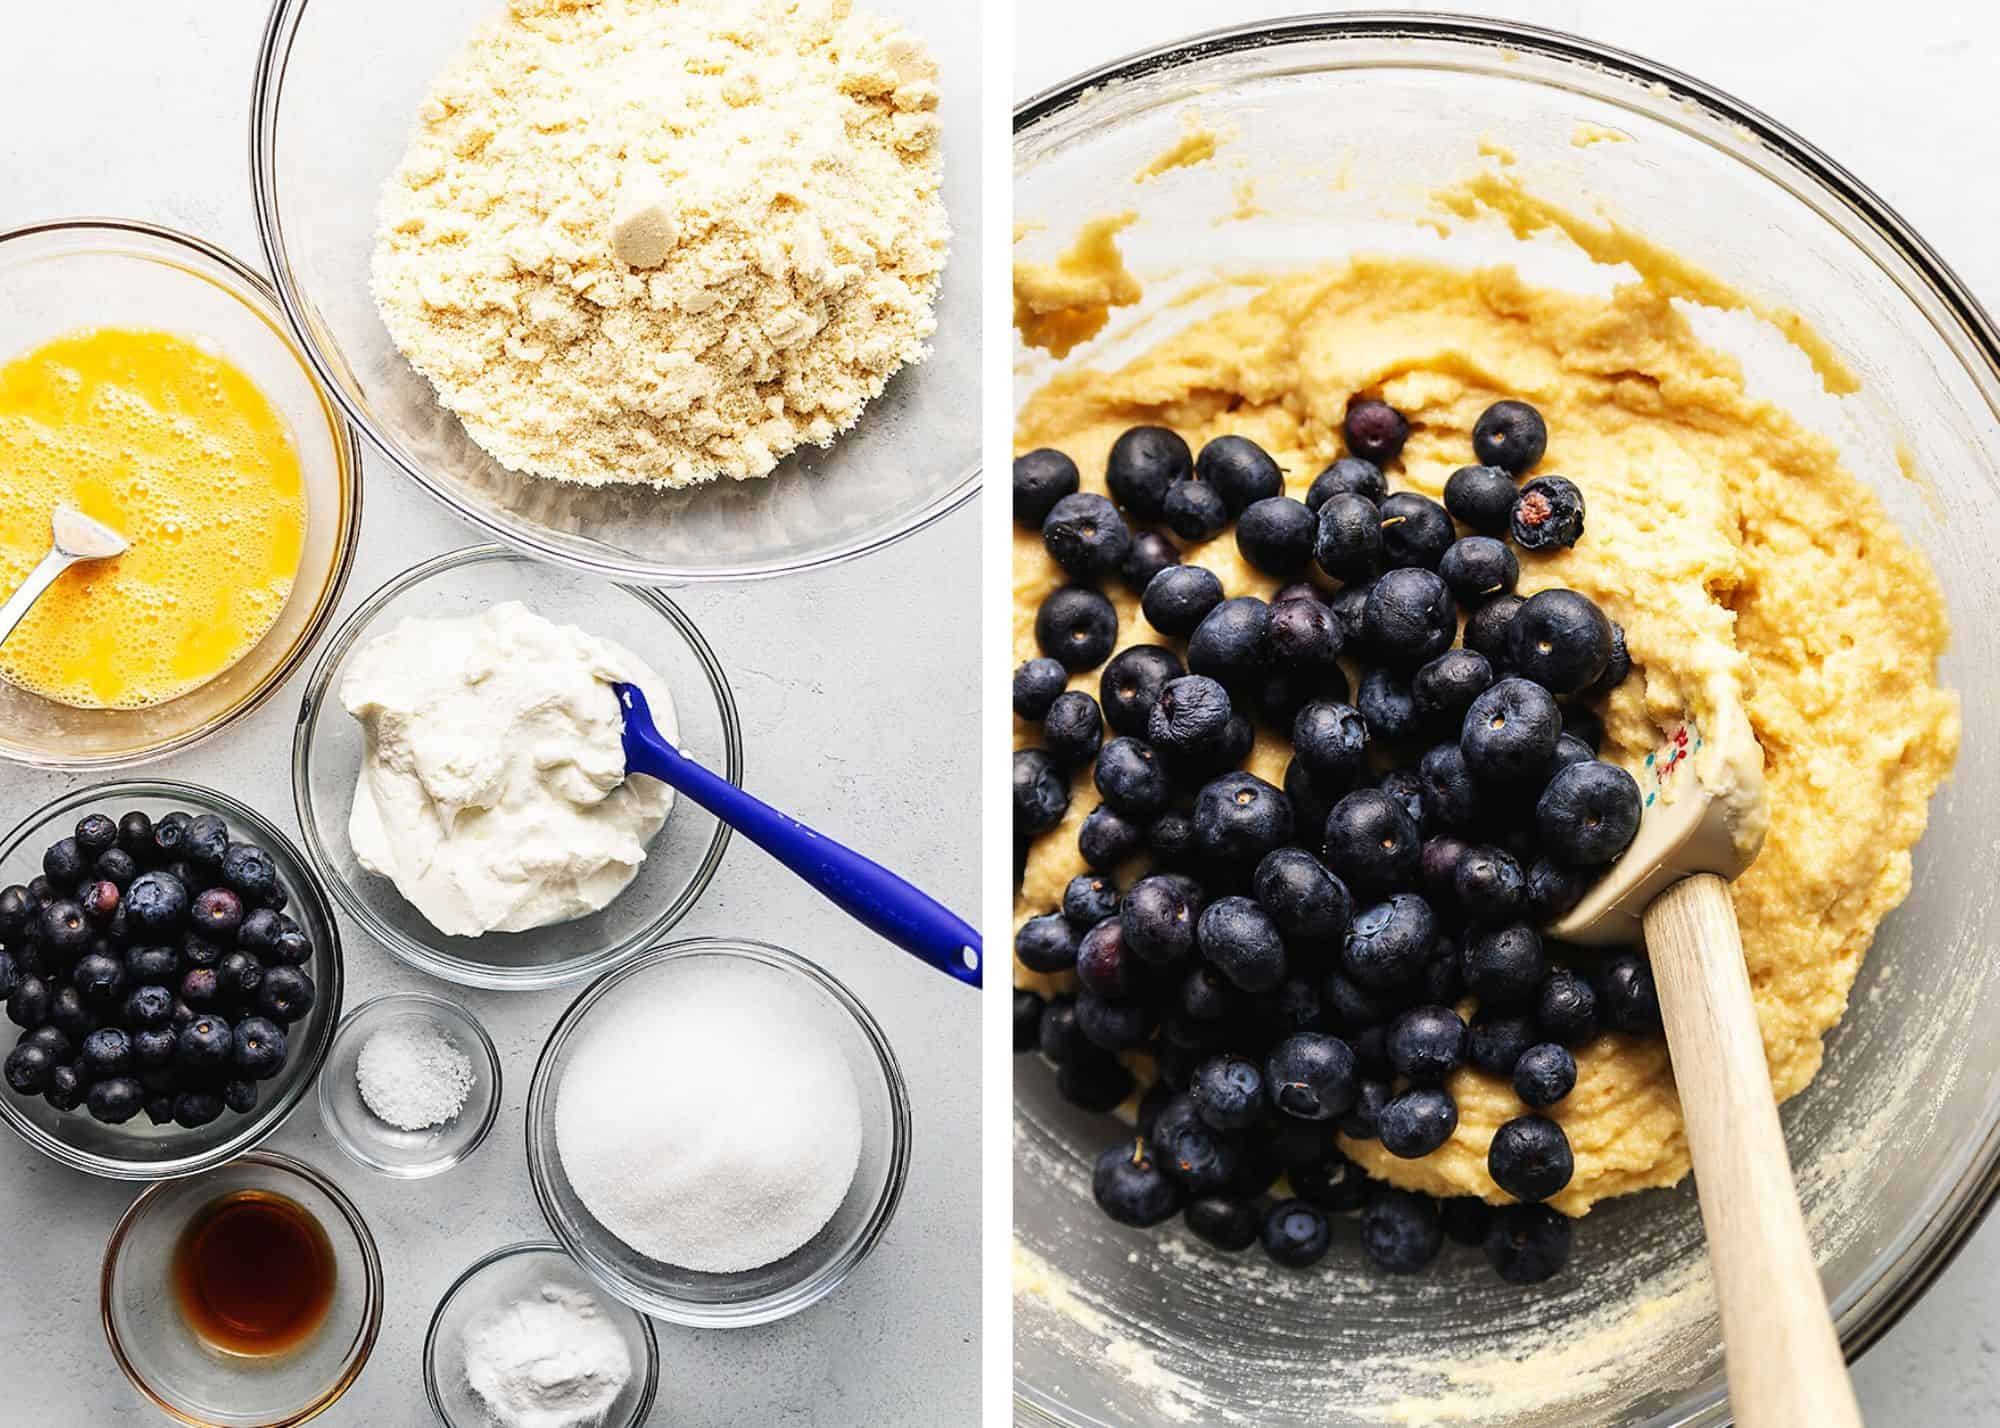 ingredients for keto blueberry muffins